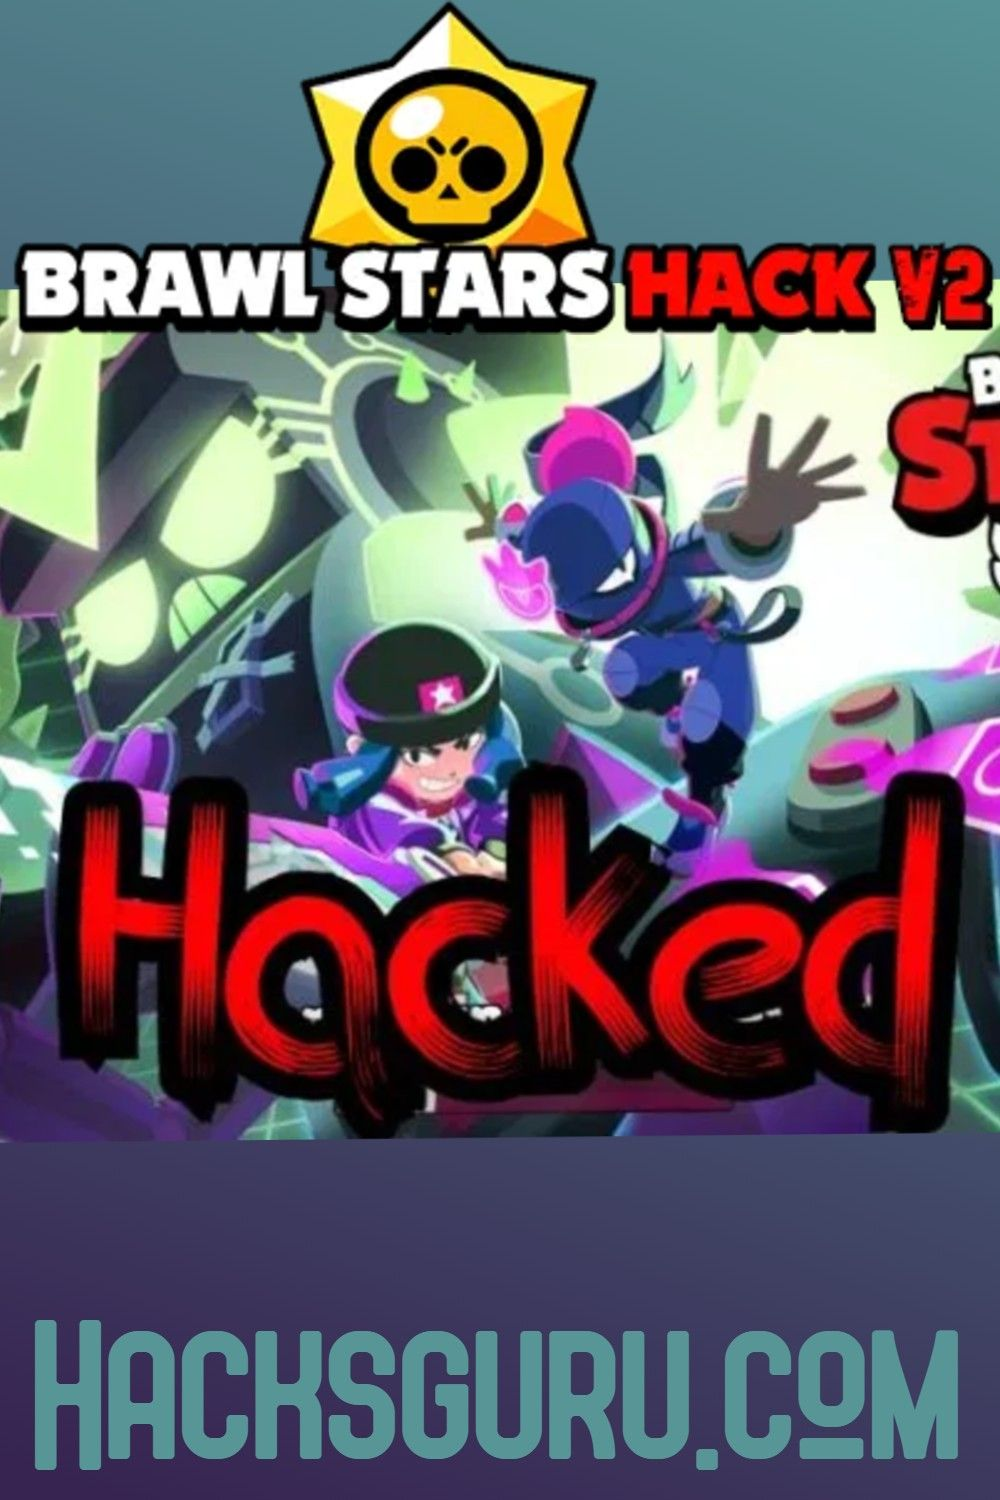 brawl stars hack in 2020 with images